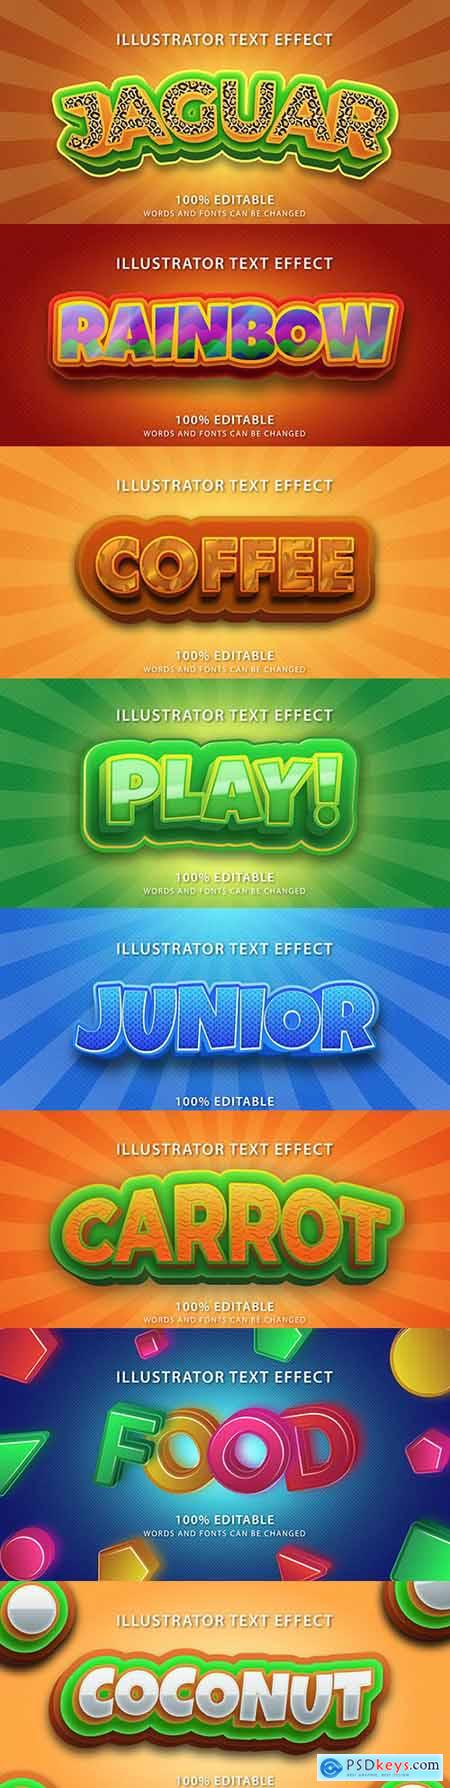 Editable font effect text collection illustration design 160